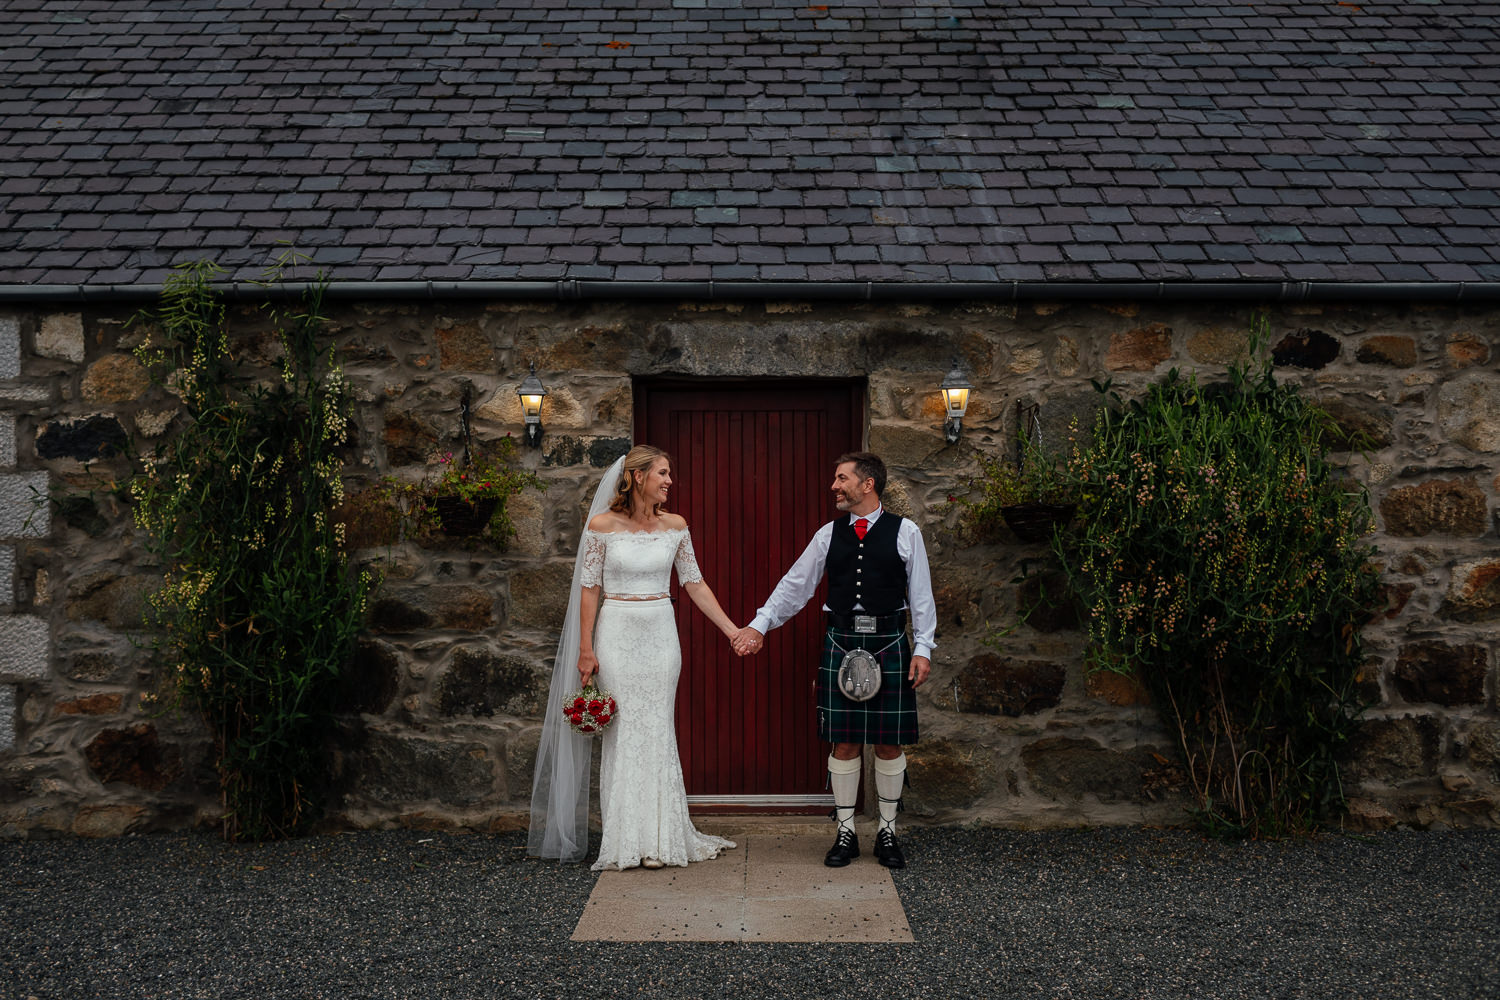 aberdeenshire farm wedding bride groom portrait outside front door